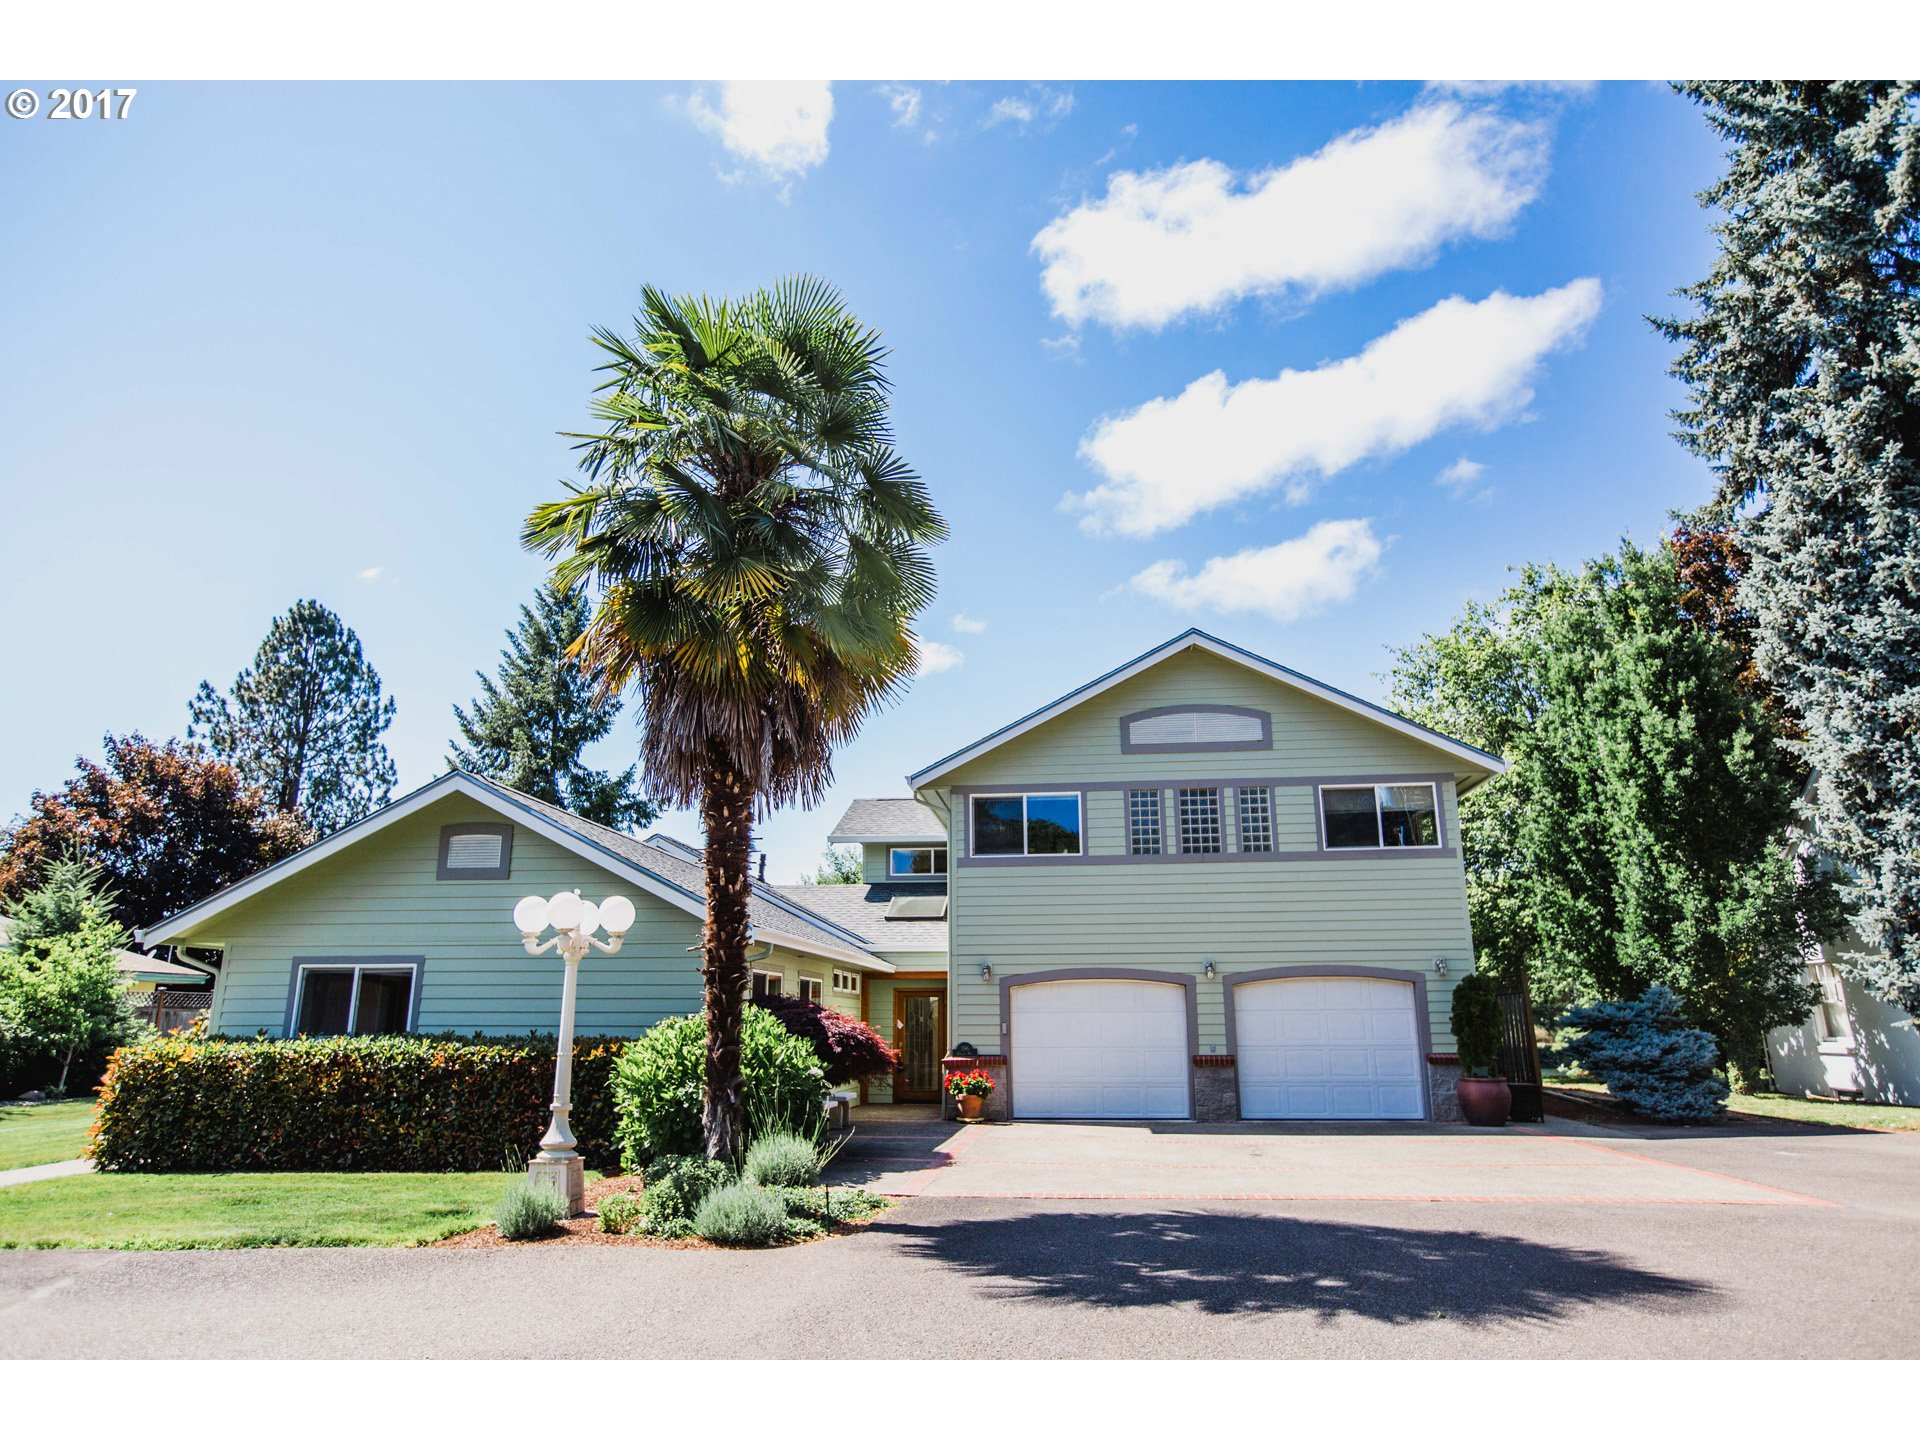 396 PIONEER WAY, Winchester, OR 97495